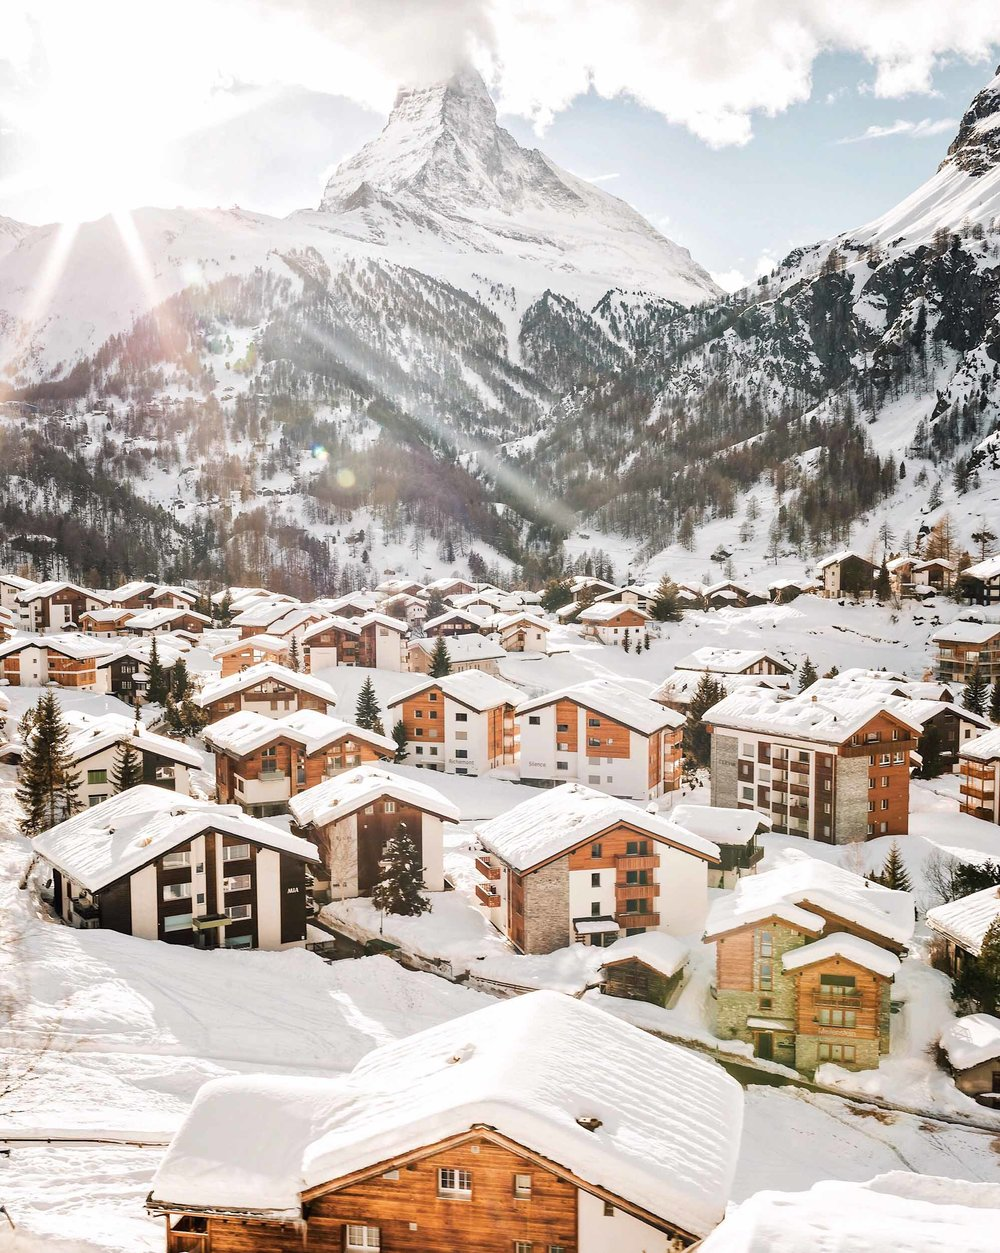 Golden hour in Zermatt, Switzerland